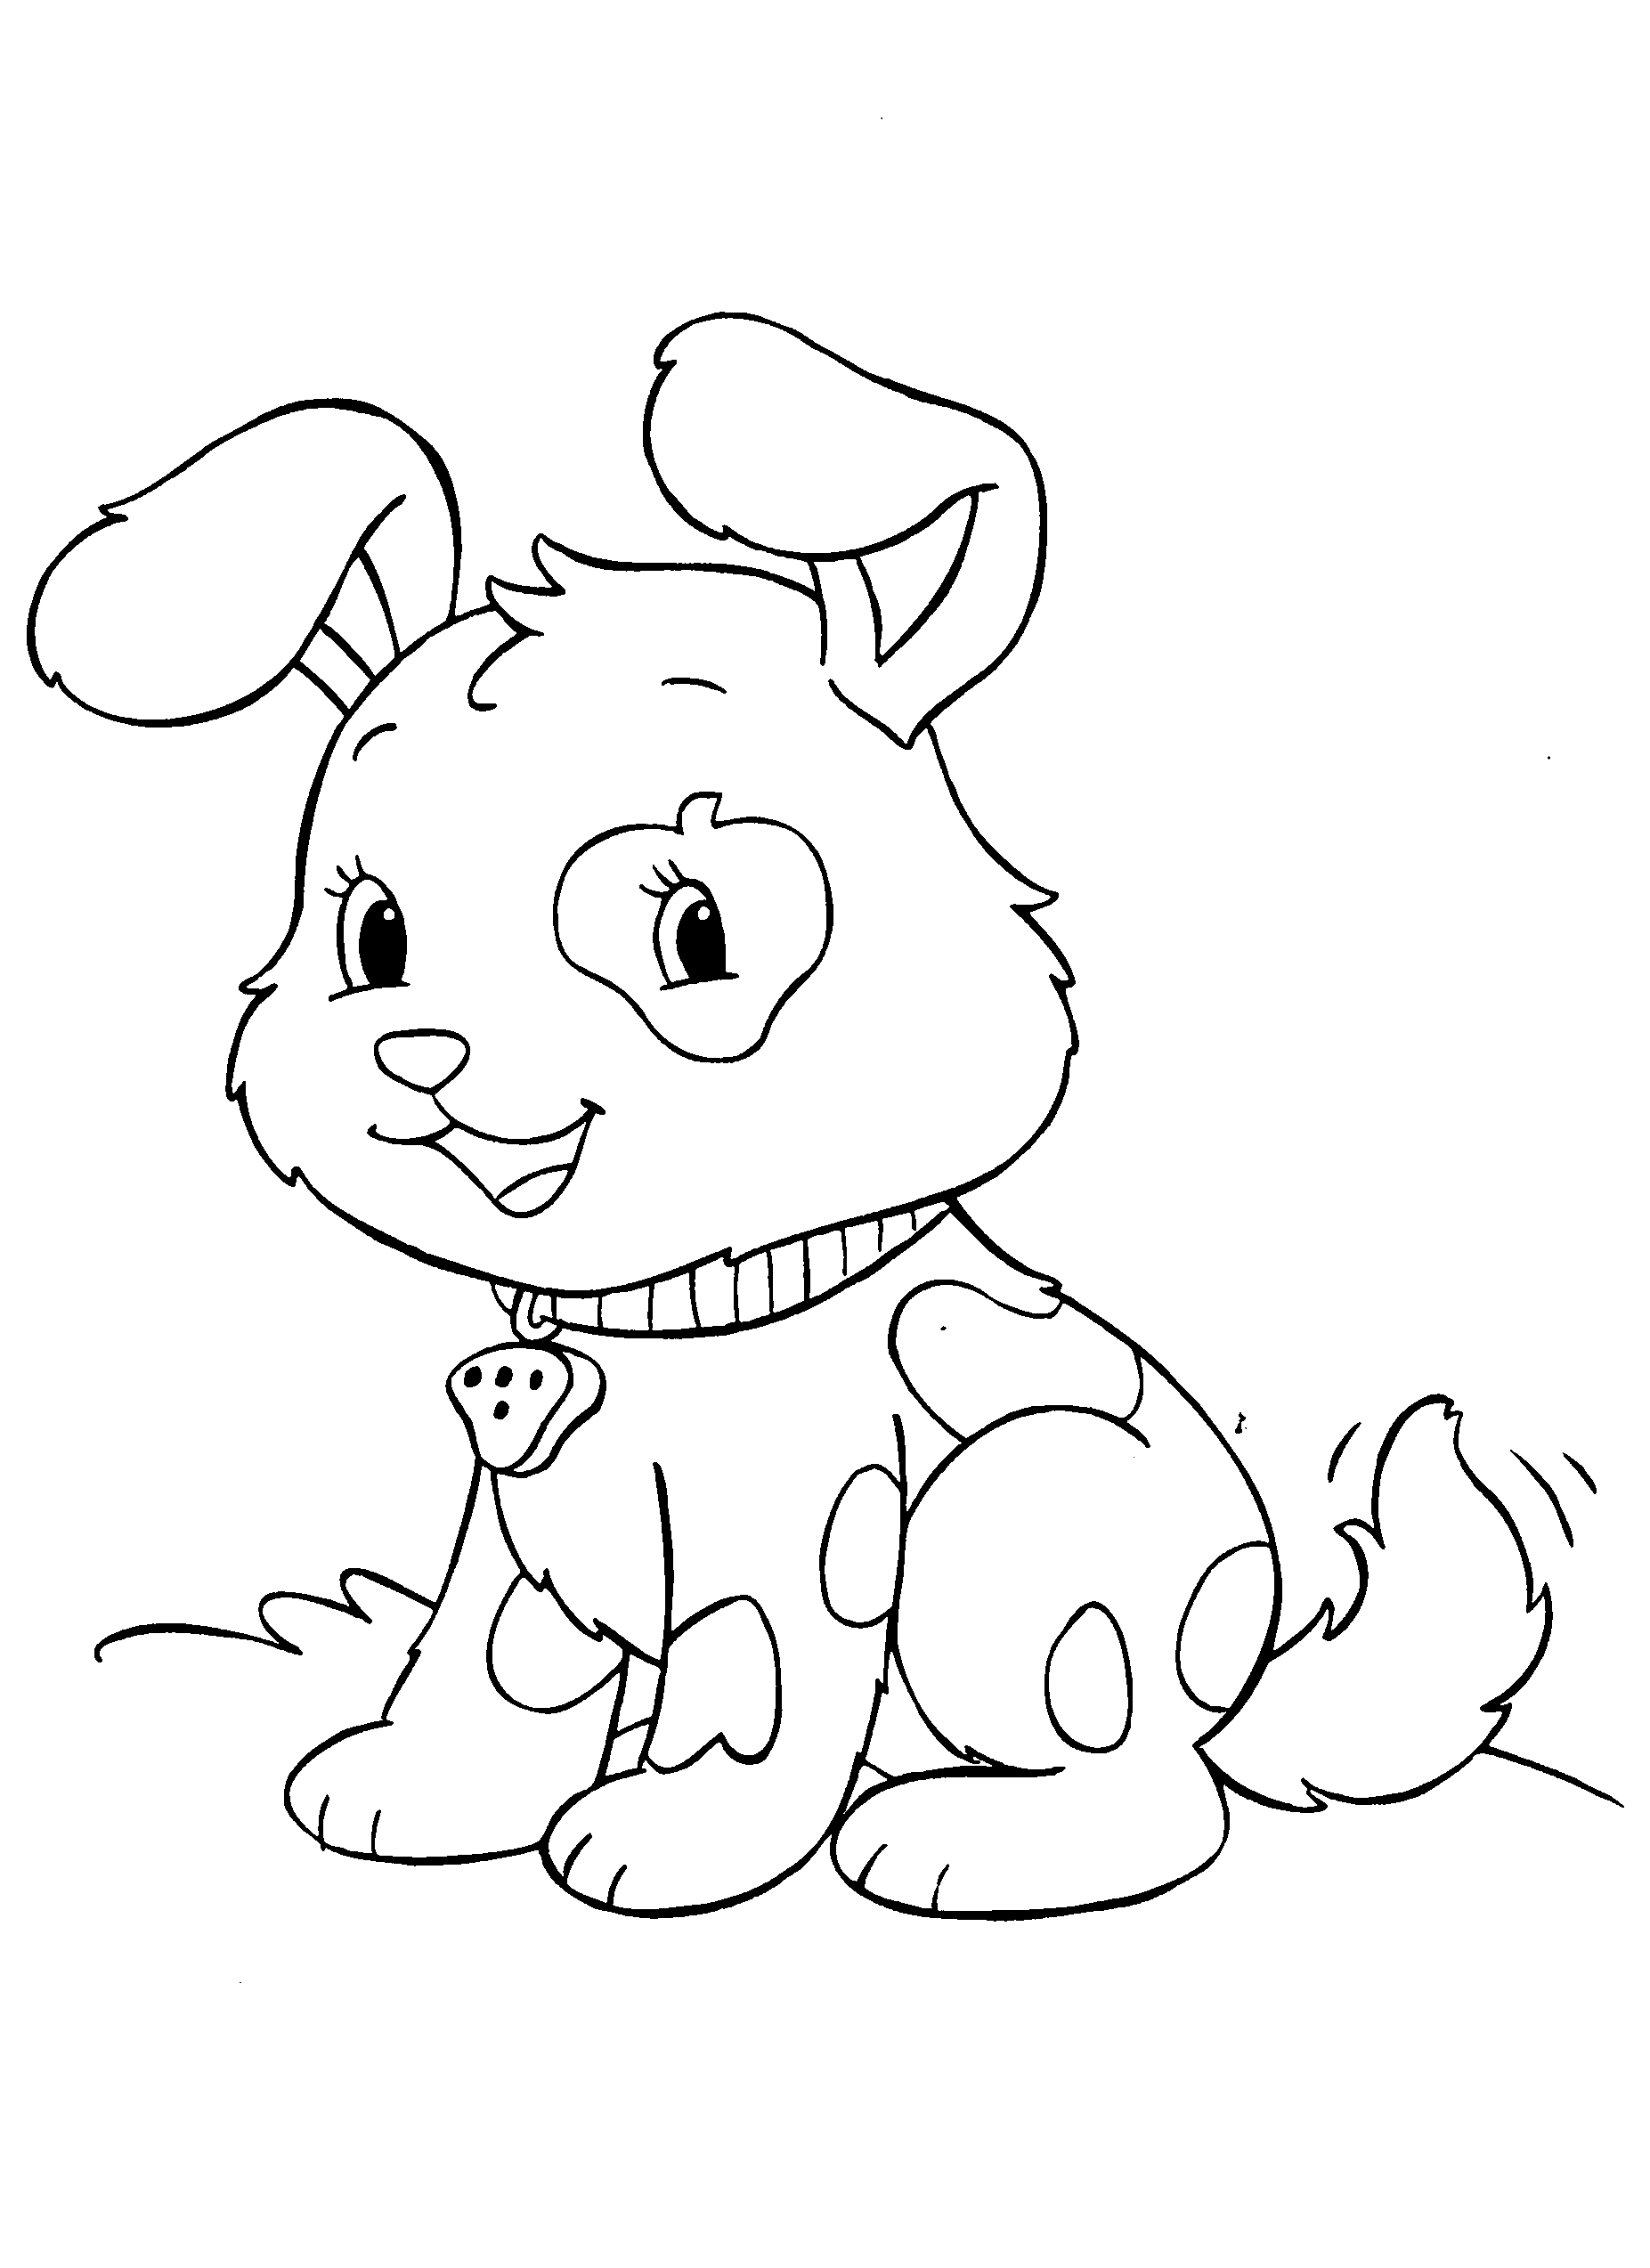 Little Puppy Coloring Pages Animal Coloring Pages Puppies Photo Album Sabadaphnecottage